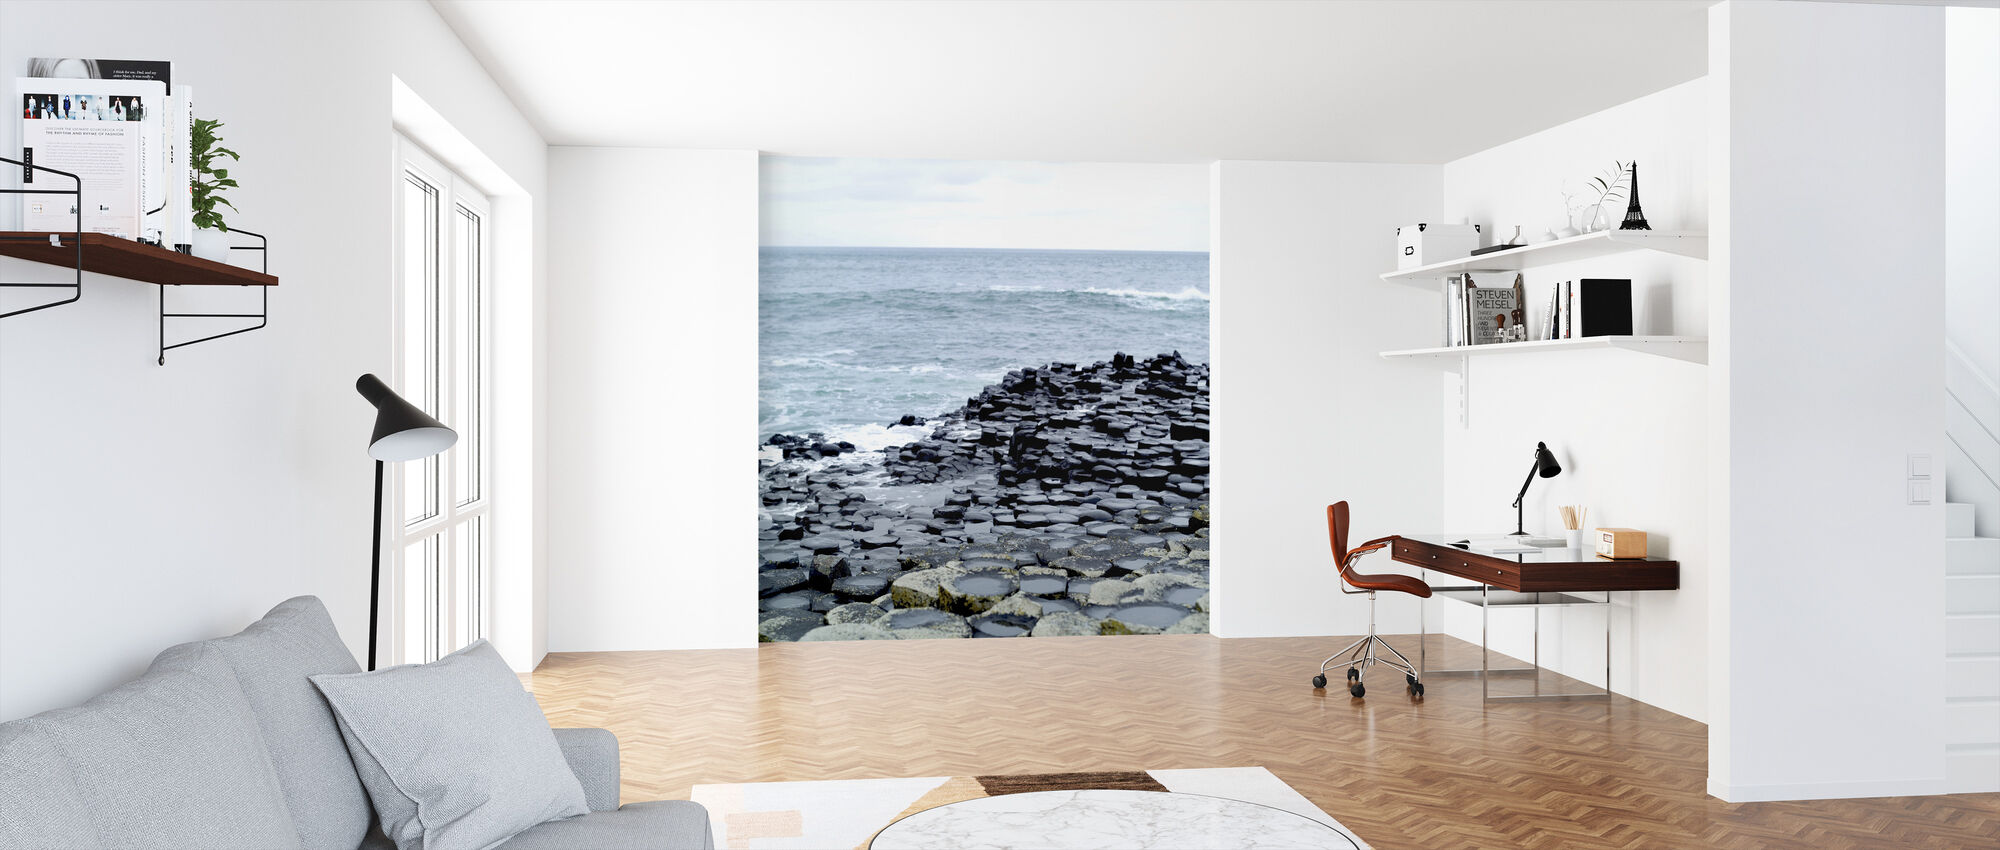 Giants Causeway in Antrim - Wallpaper - Office